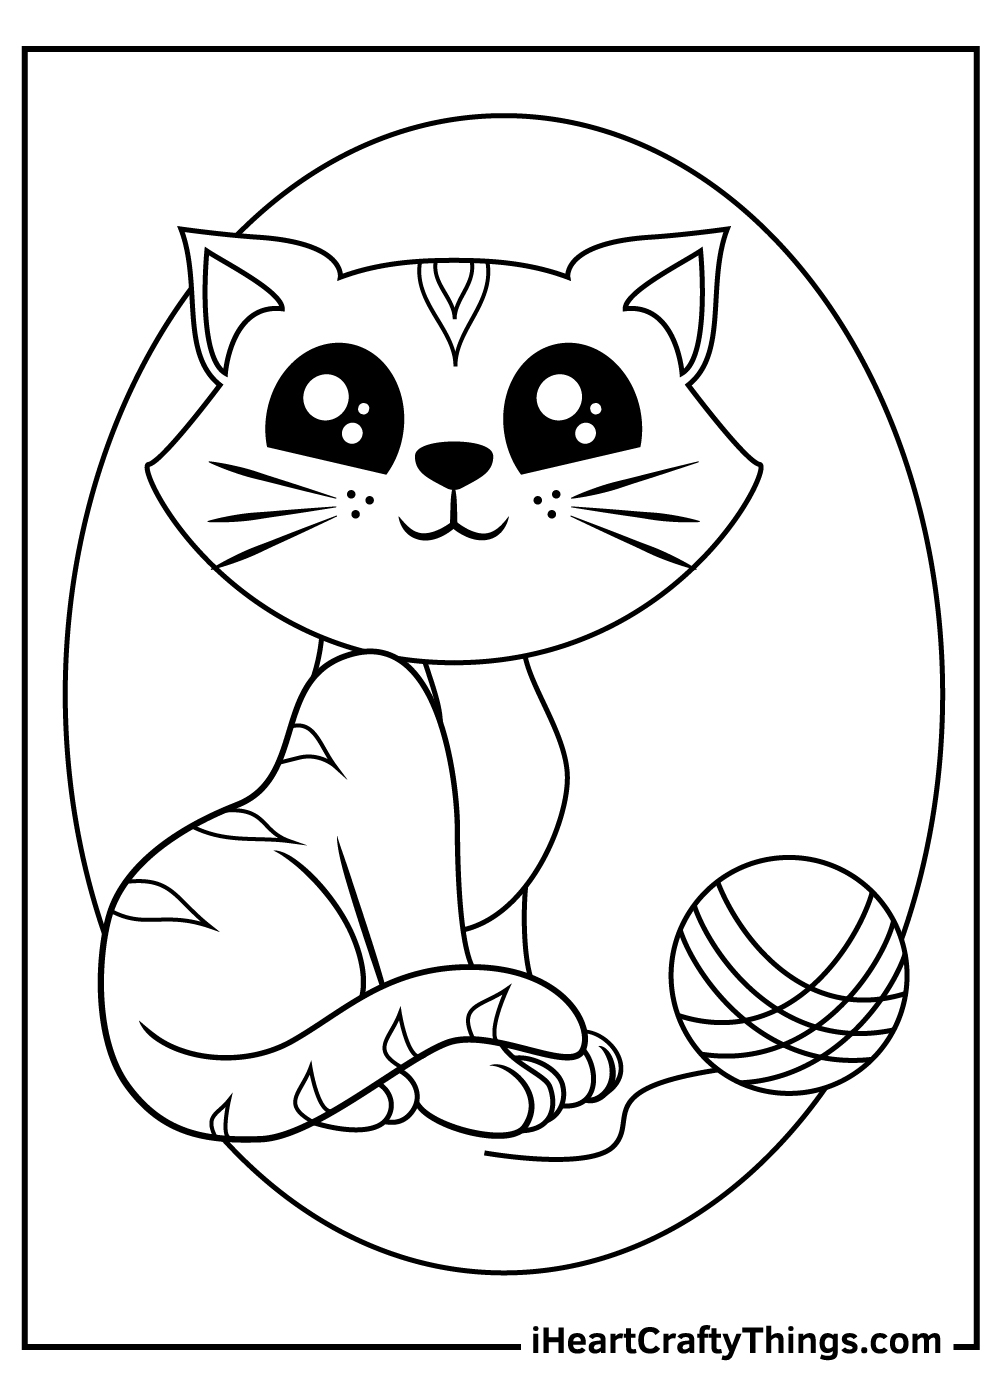 really cute kitten coloring pages for preschoolers